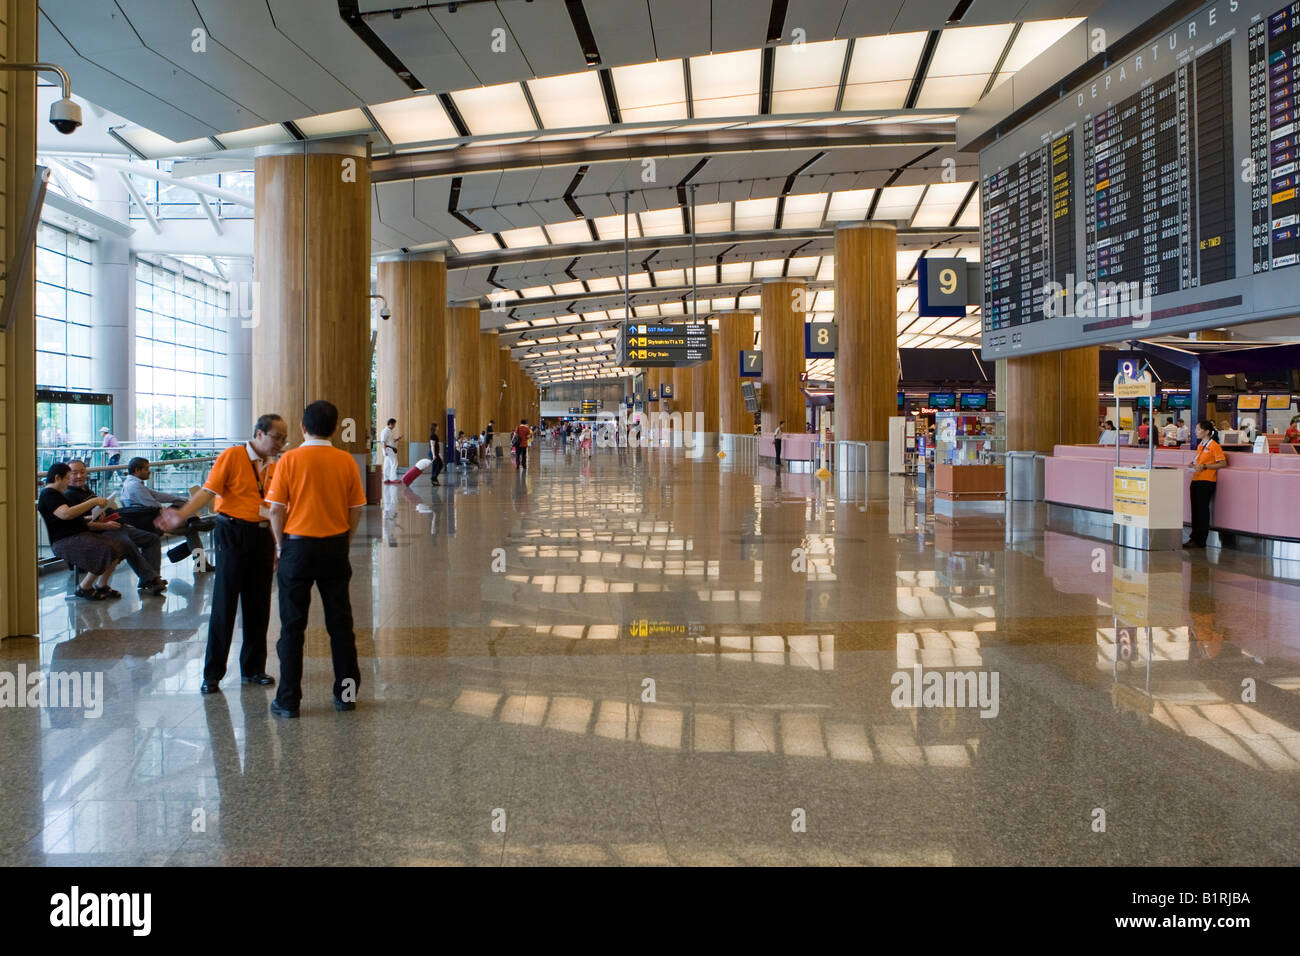 Departure hall and check-in counters at Changi Airport, Singapore, Southeast Asia - Stock Image